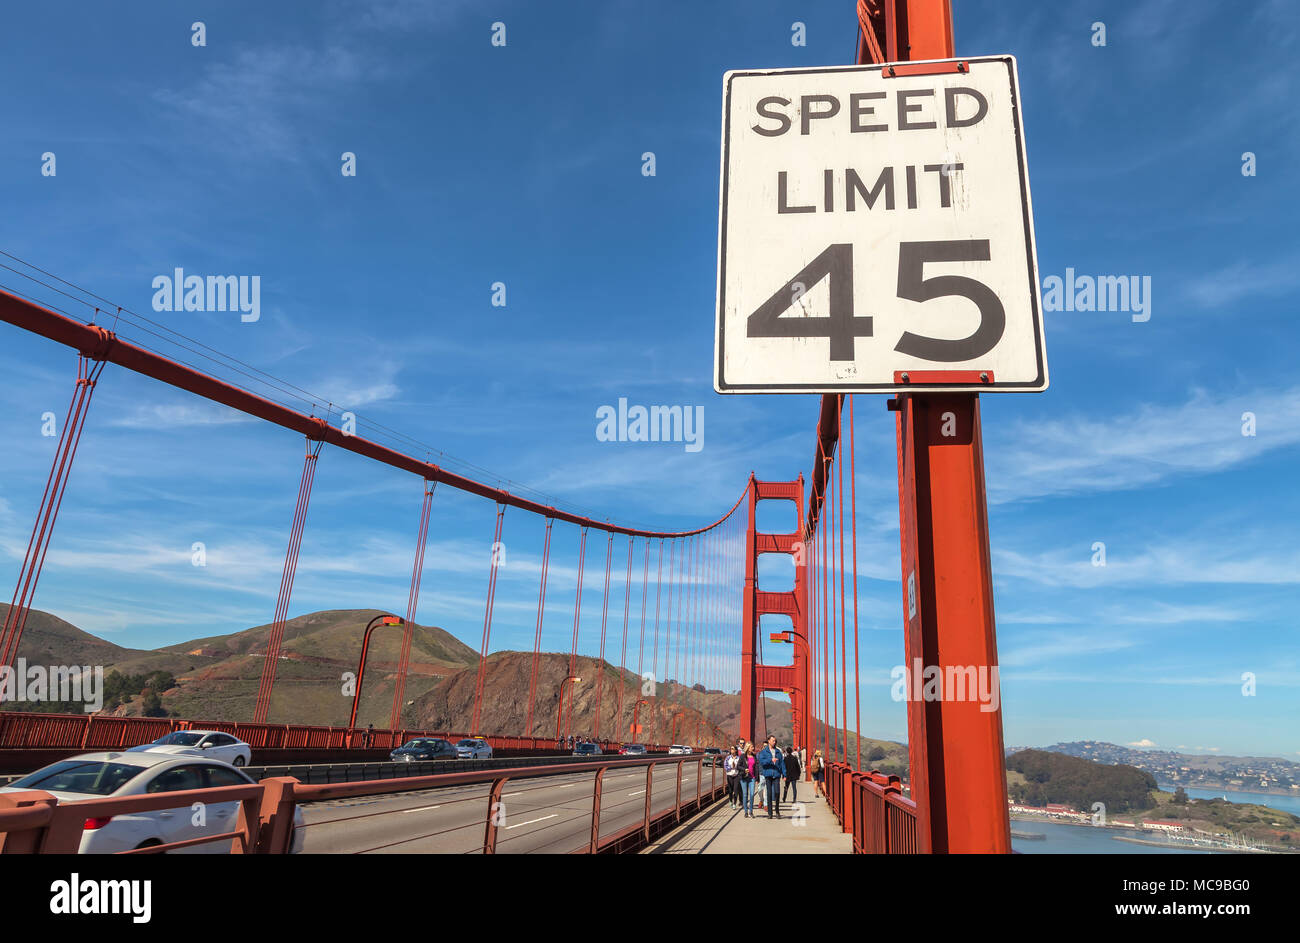 Driving speed limit sign on the Golden Gate Bridge, San Francisco, California, United States. - Stock Image